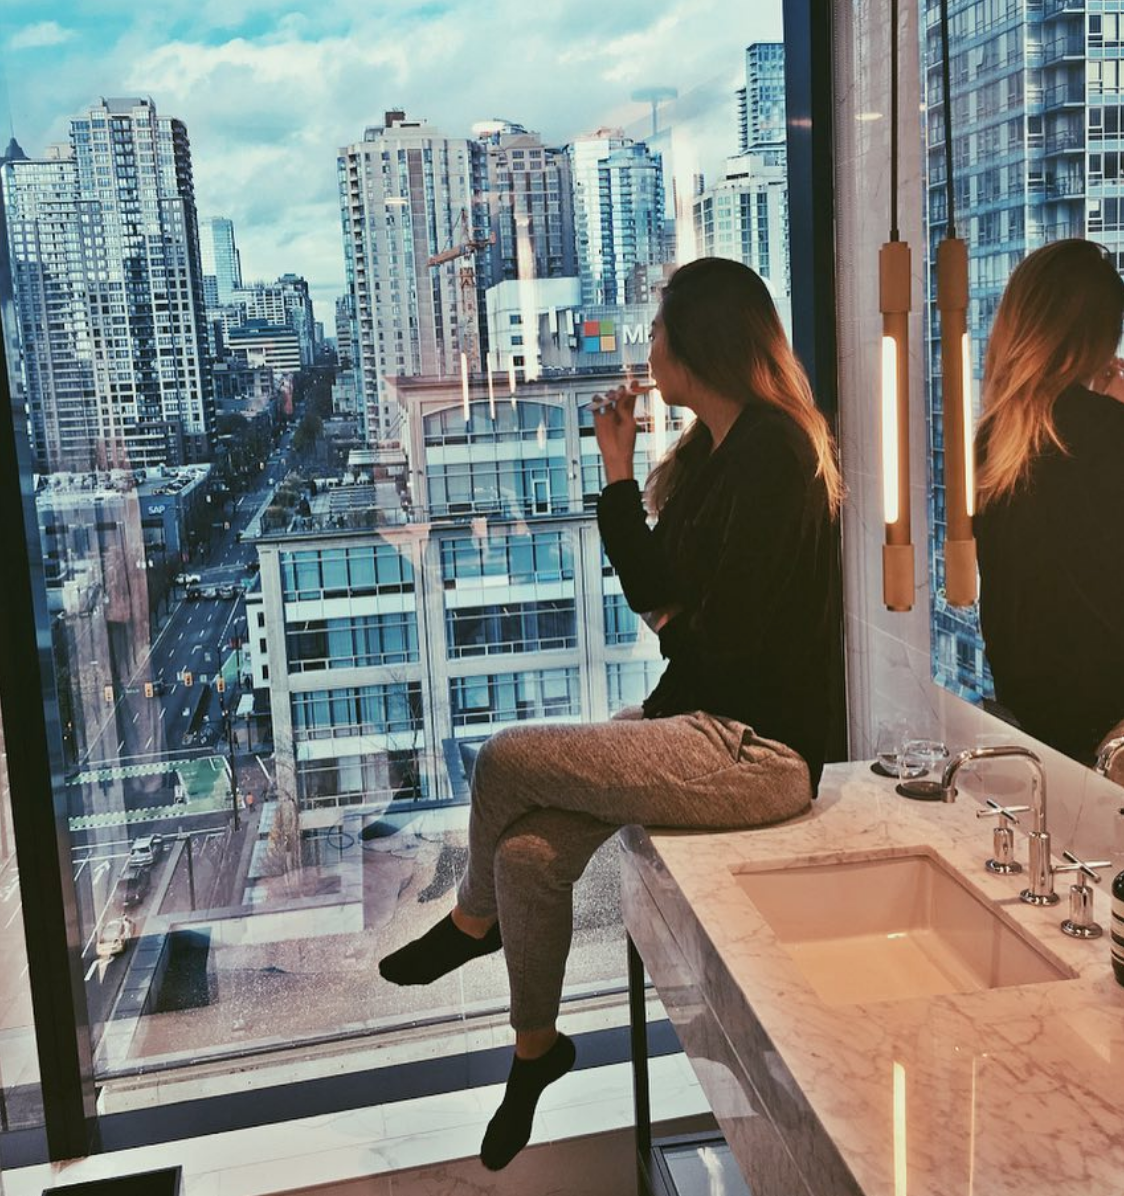 Highlights - ▽ The entire suite was unreal, but the master bathroom with the shower views was definitely the biggest highlight for me.▽ Can someone please buy me that BED?! We still can't get over how damn comfy it was!▽ We went and enjoyed a dip in the outdoor jacuzzi on the rooftop in pouring rain, which was a lot of fun and quite romantic. (Water could have been warmer doe)▽ Happy Hour at Honey Salt and BC Kitchen. (Highly recommend cocktails at BC Kitchen and the mussels at Honey Salt)▽ Gambling at the Casino (even though we lost 75% of the time haha)